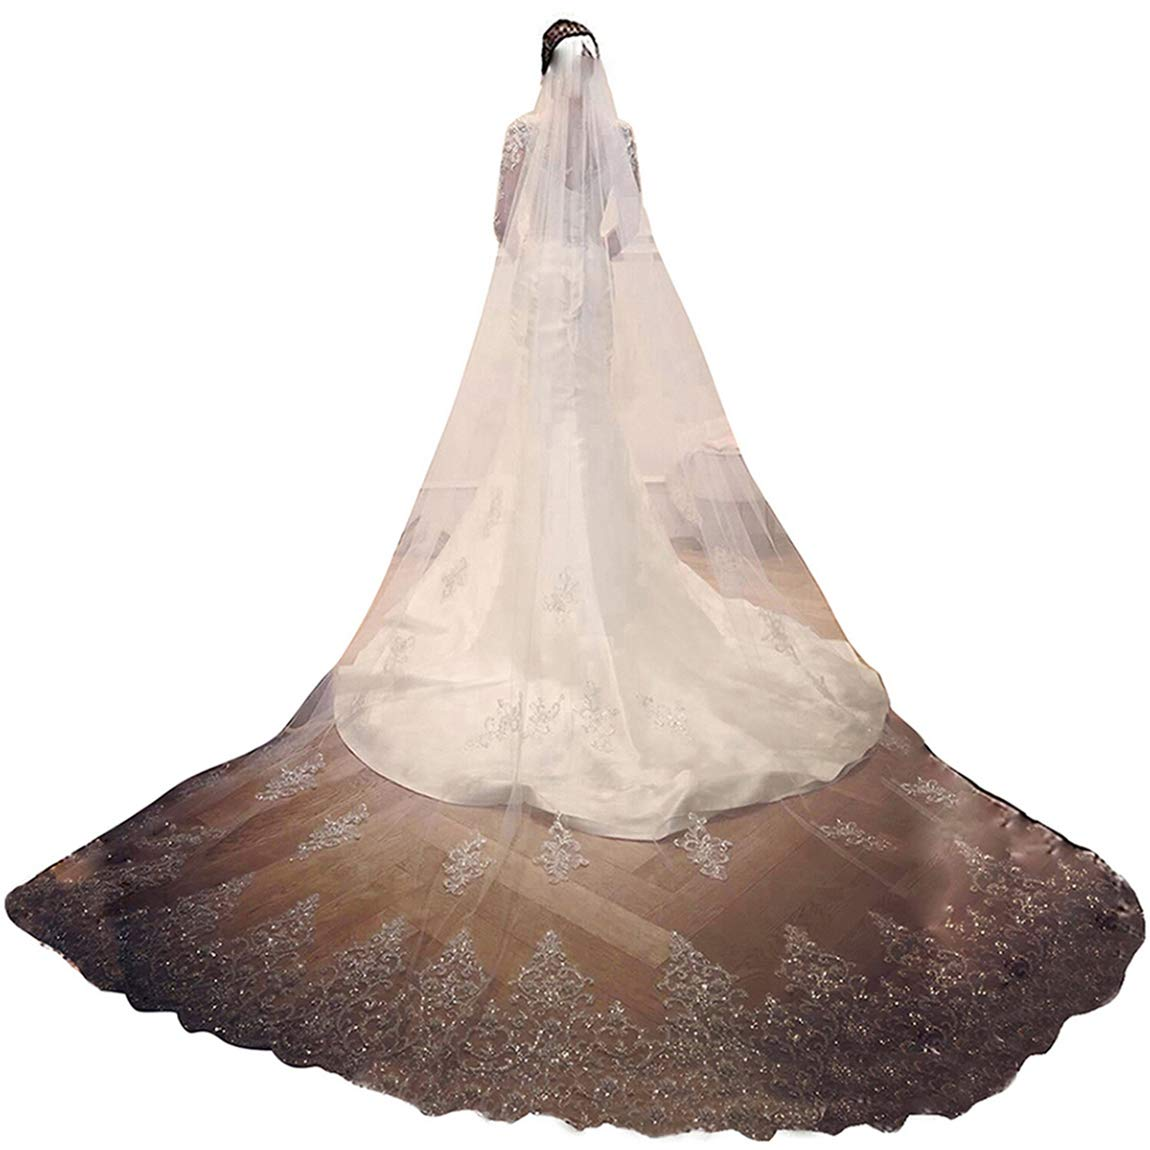 Faithclover Wedding Veils White Ivory 1 Tier Cathedral Beaded with Rhinestones Long with Comb, 3 Meters